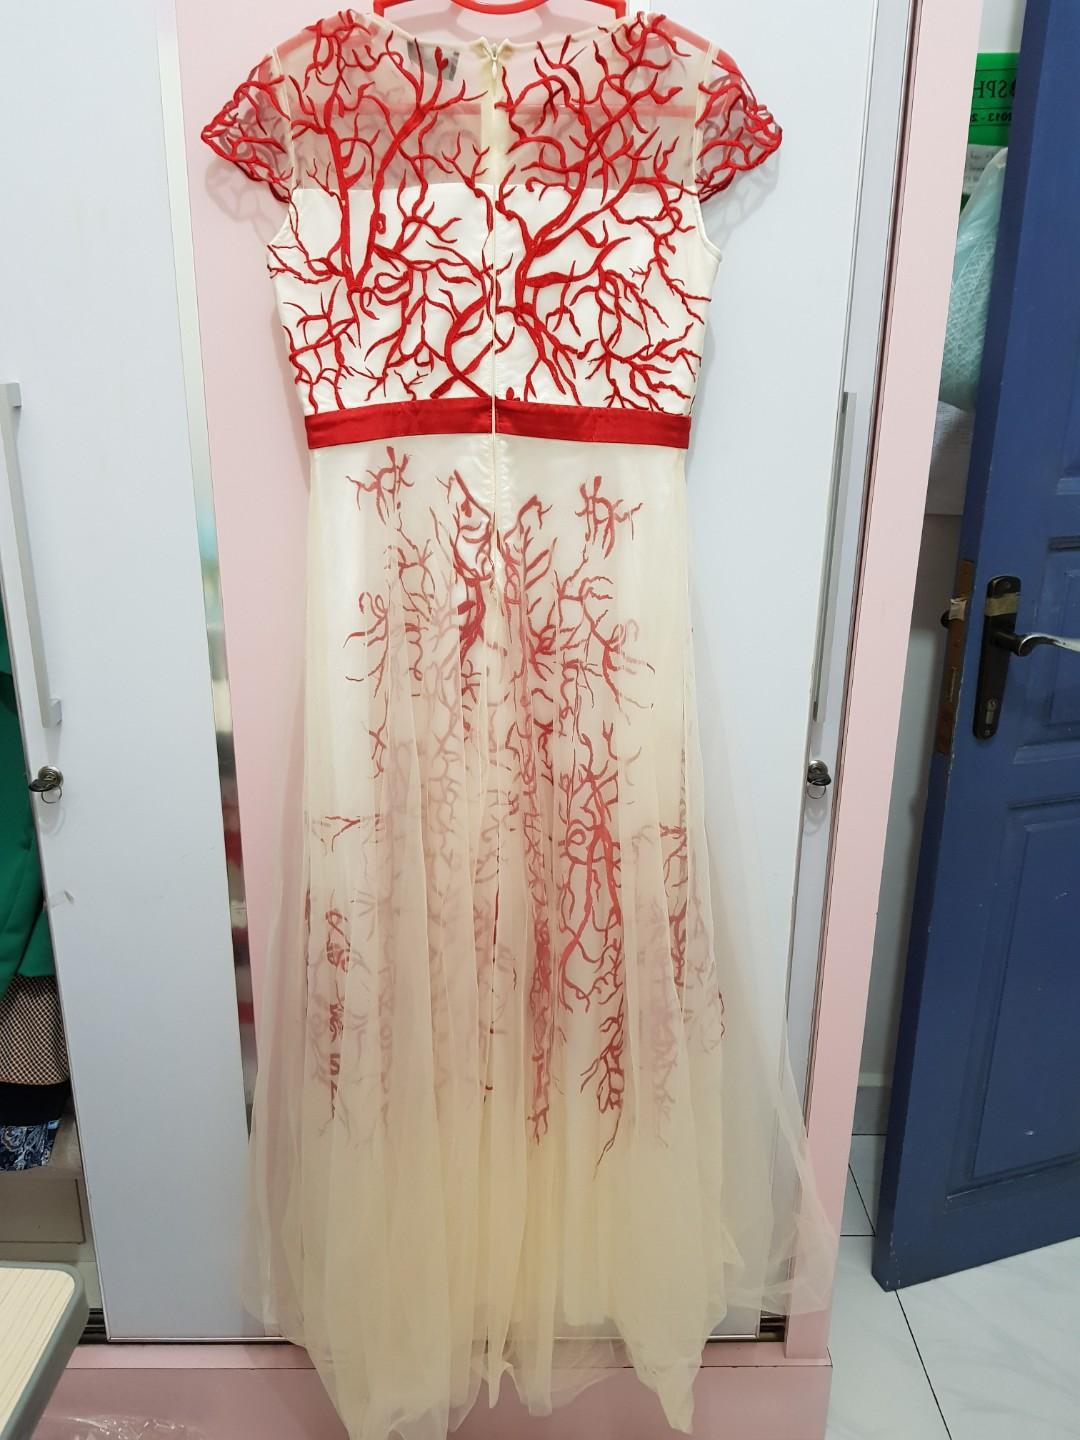 Laud Red root party dress